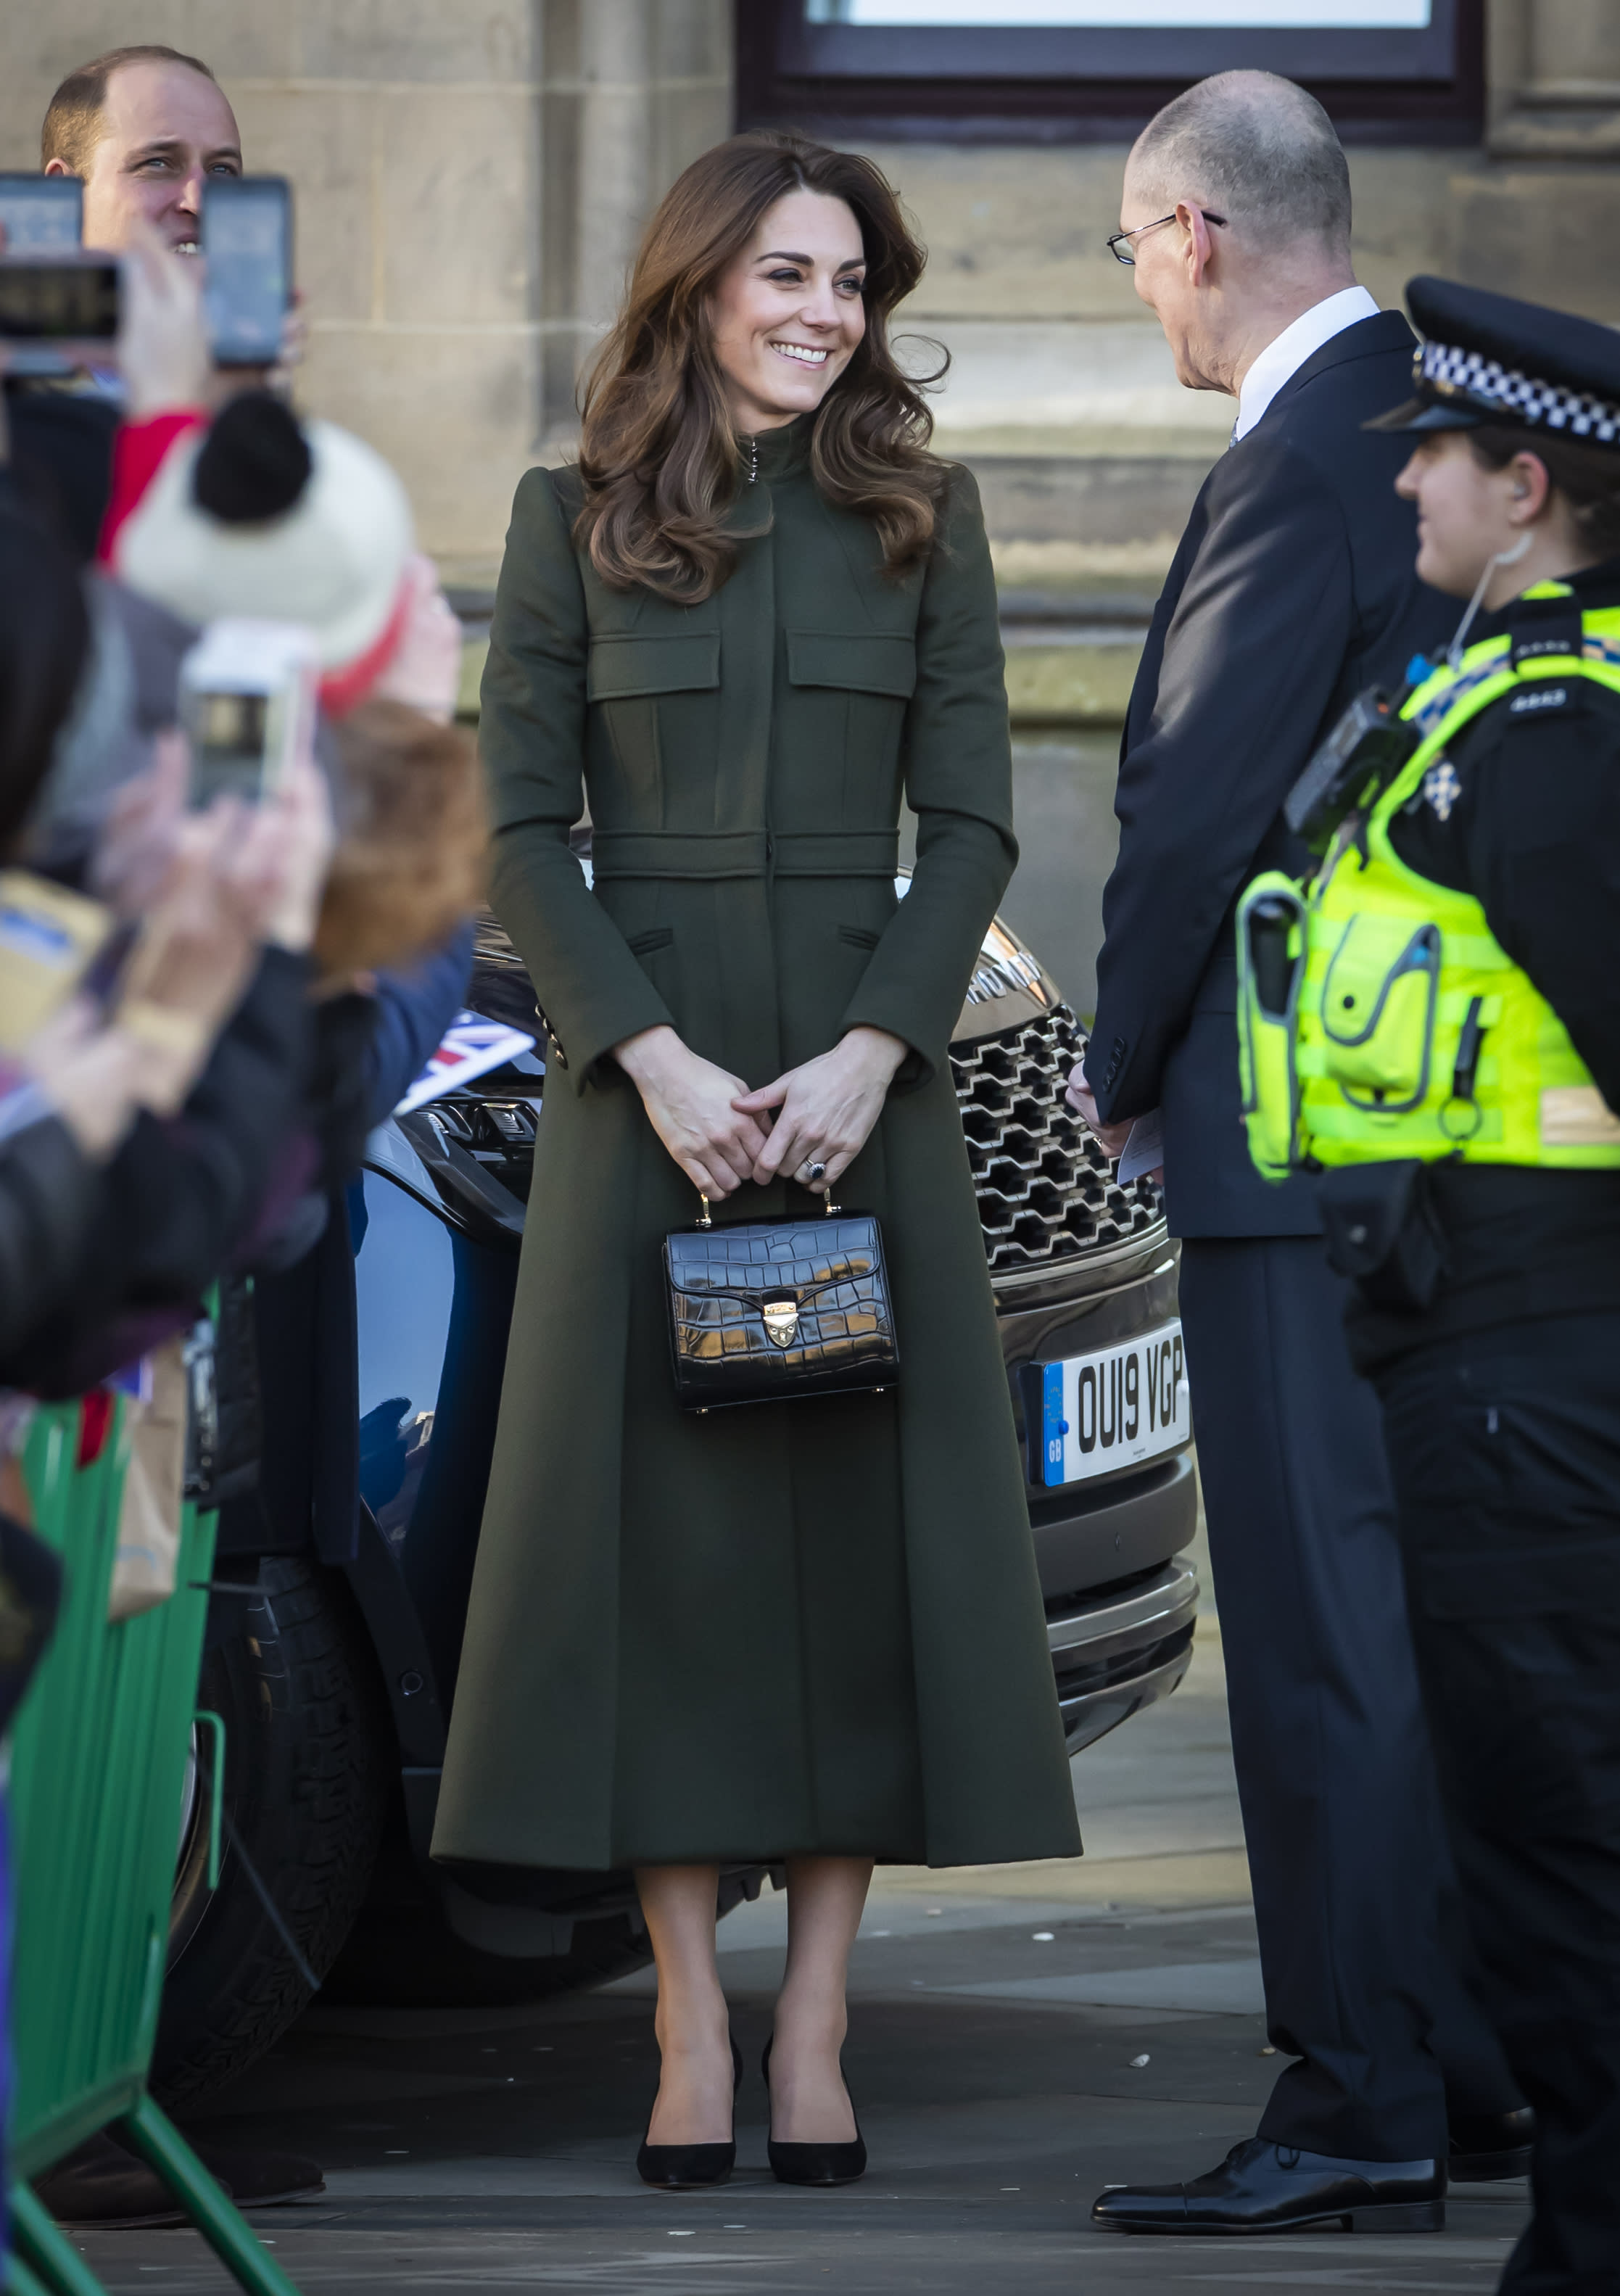 The Duchess of Cambridge debuted her latest Aspinal of London bag at City Hall in Bradford to join a group of young people from across the community to hear about life in the city. [Photo: Getty]